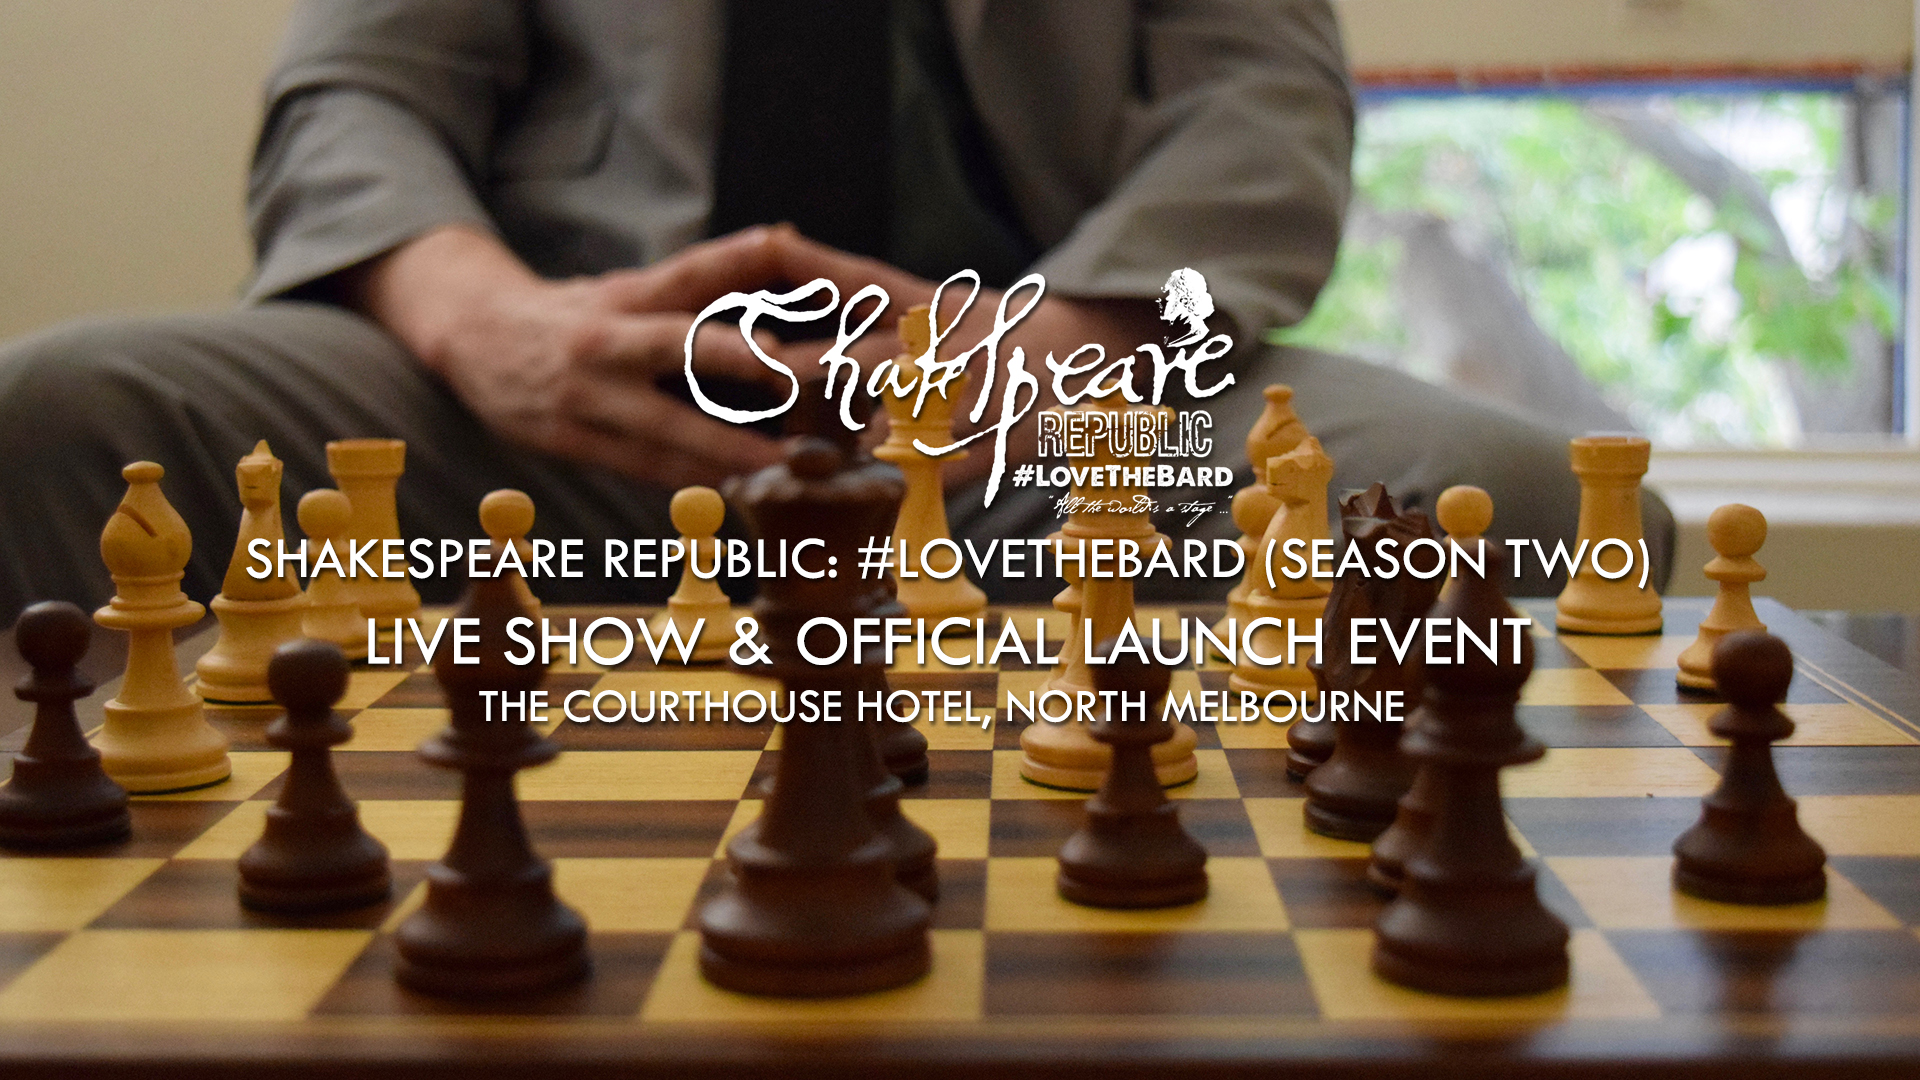 Shakespeare Republic: #LoveTheBard Launch Party & Live Show Video! #Shakespeare #Theatre #Webseries